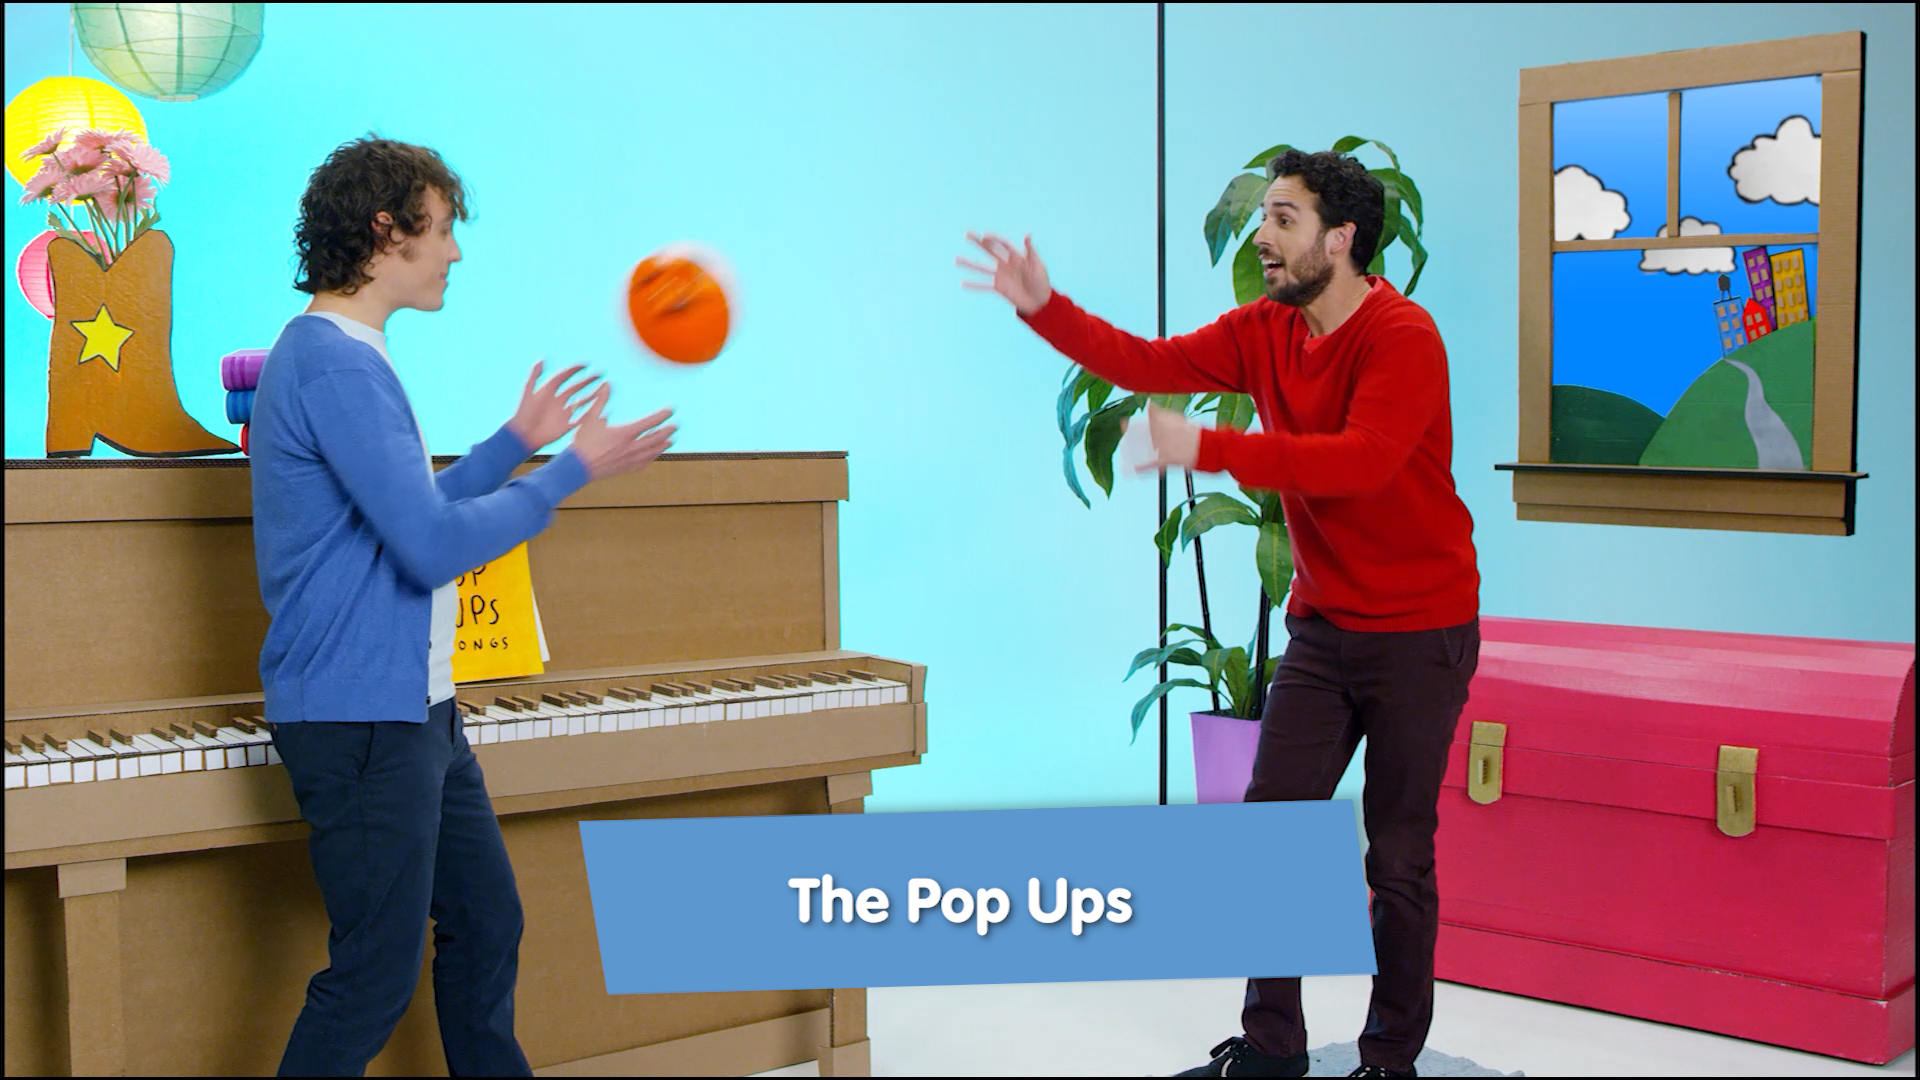 Two men are in a room with an upright piano and red floor chest. They toss a ball between them.